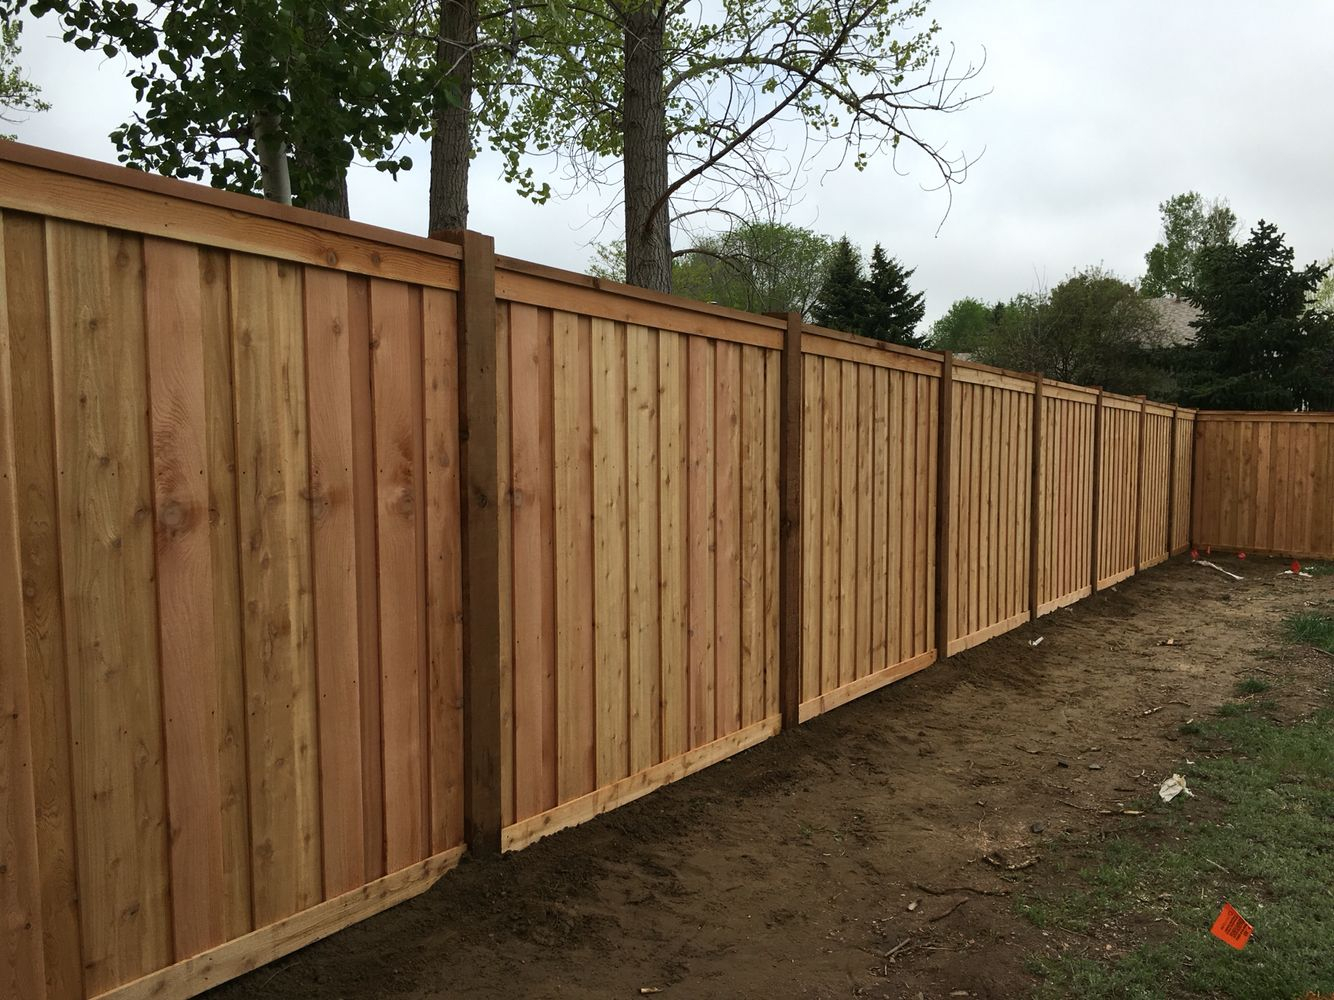 7 Tall Cedar Privacy Fence With 6x6 Posts 2x6 Top Cap 6 in proportions 1334 X 1000